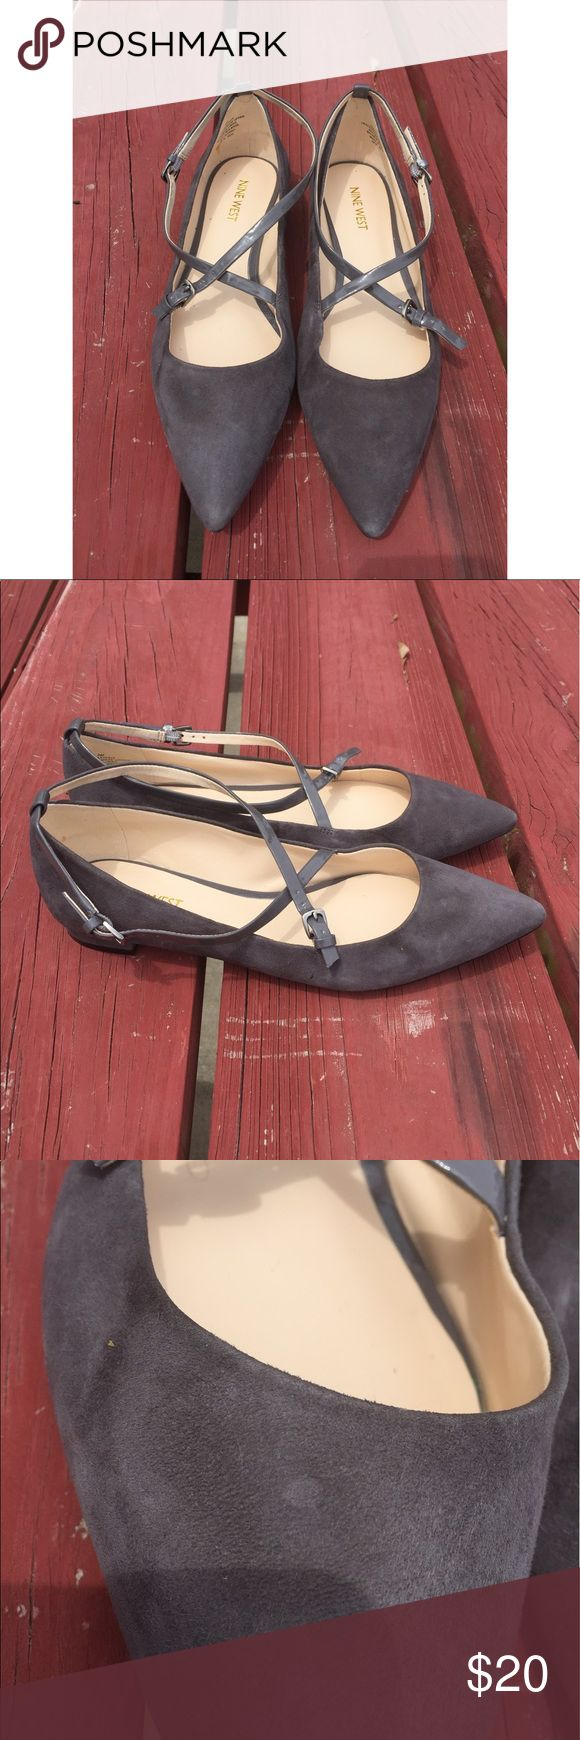 """Nine West Pointy Toe grey gray flats Sz 8 Description: Nine West Womens sz 8 M Gray Grey Anastagia Pointy Toe Flats Criss Cross Straps  Measurements: Length 10"""", Width 3.25"""", Heel .5"""" Condition: This item is gently used with minor signs of wear (wear on bottom, minor spot on top) Nine West Shoes Flats & Loafers"""